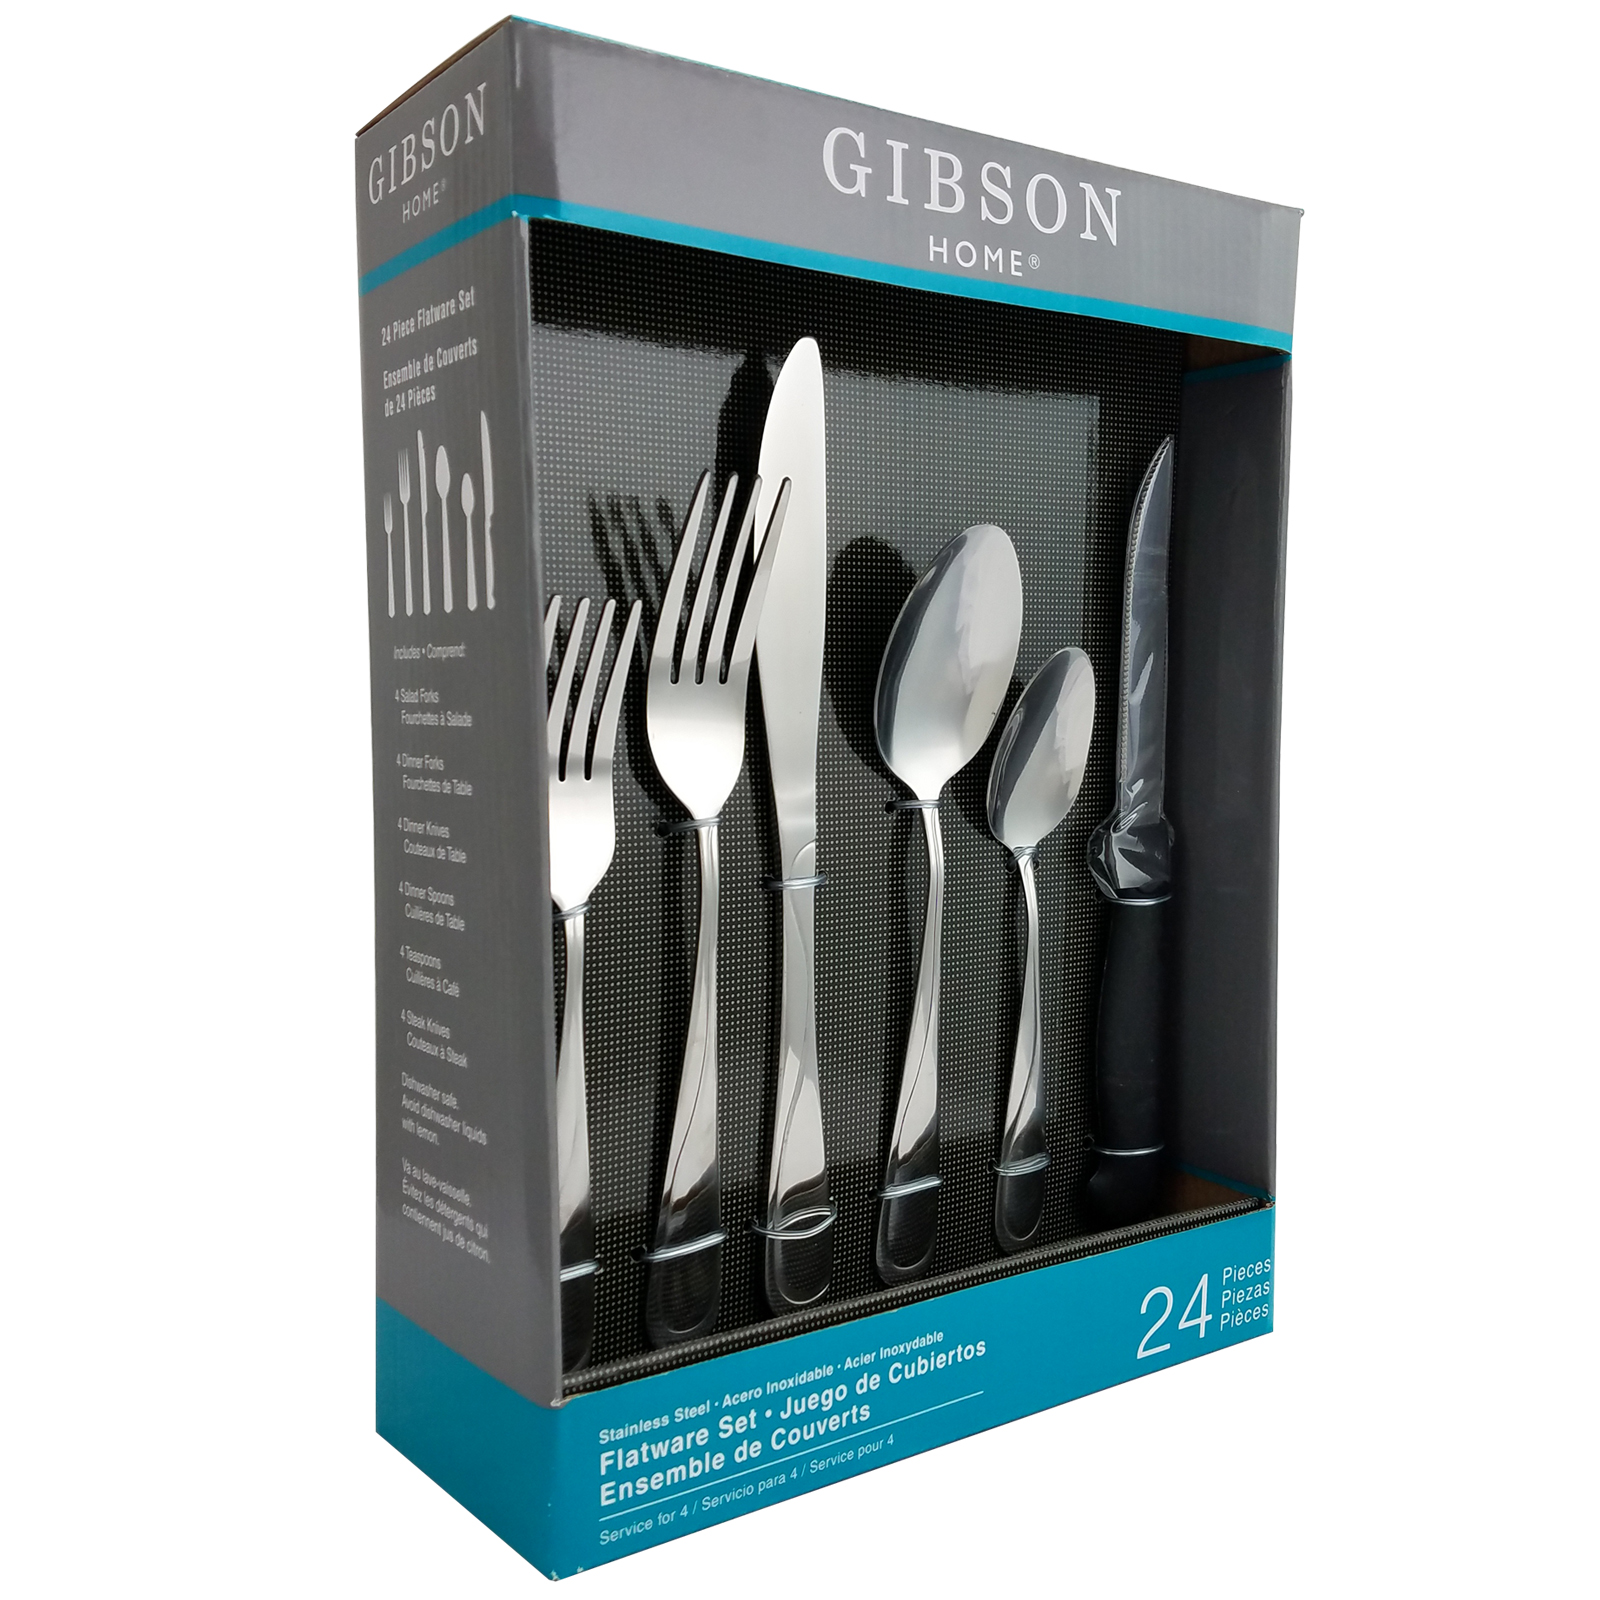 Gibson Home Trillium Plus 24 Peice Flatware Set with 4 Steak Knives